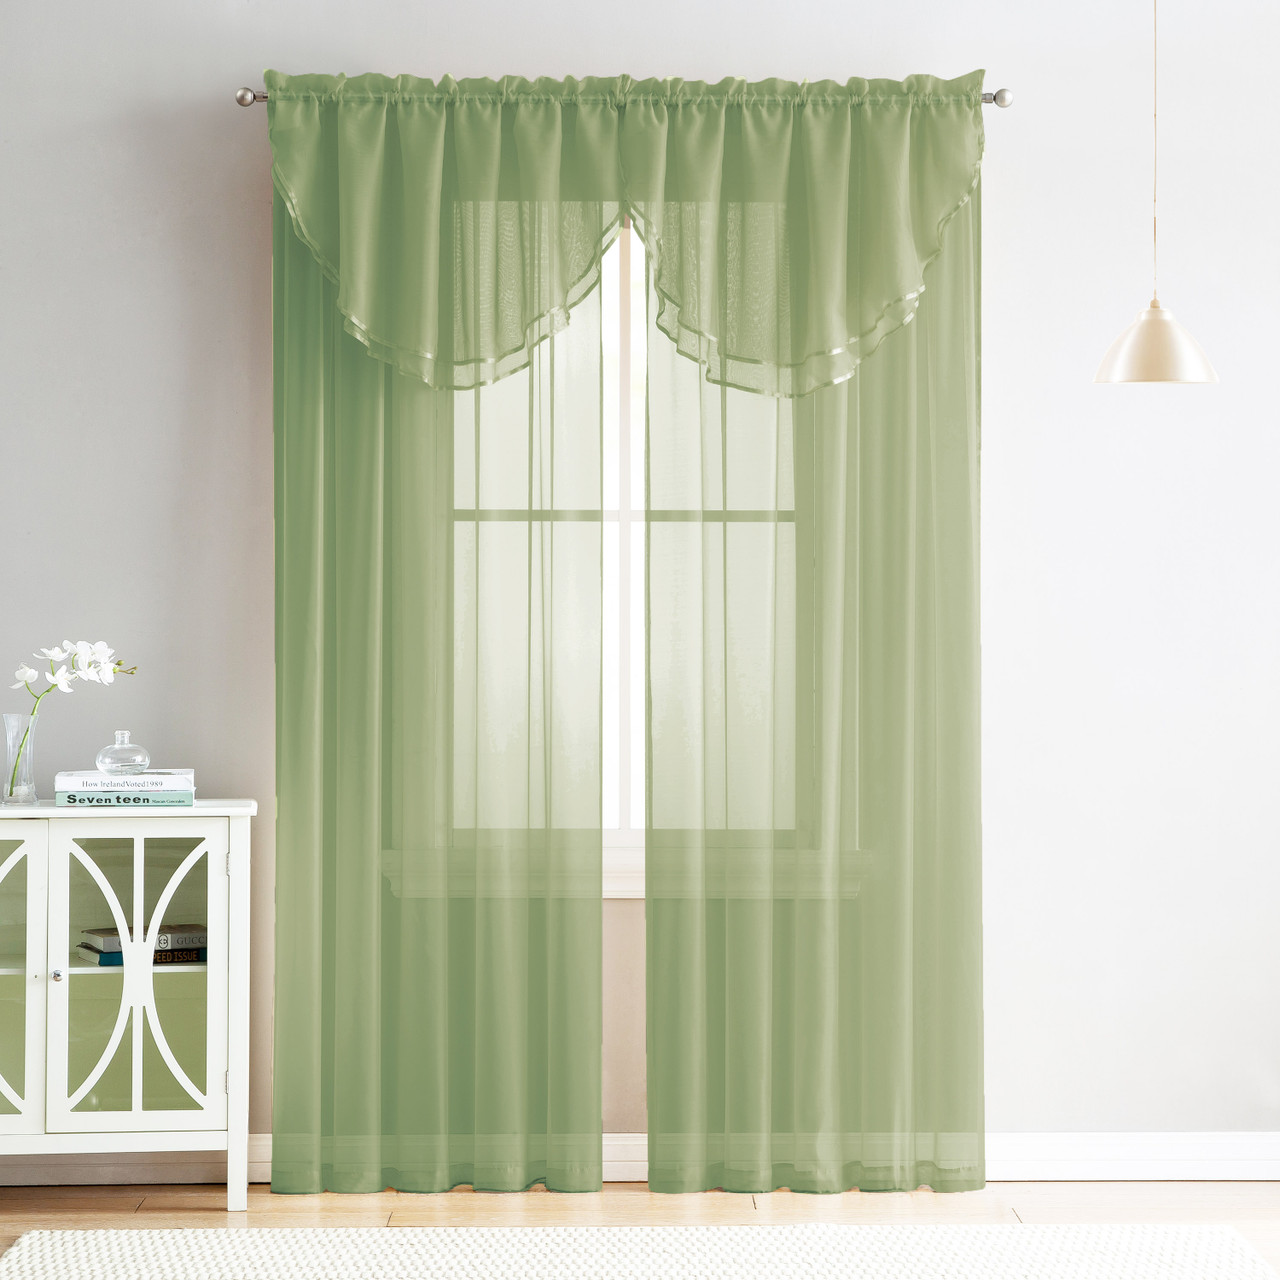 4 Piece Sheer Window Curtain Set for Living Room, Dining Room, Bay Windows:  2 Voile Valance Curtains and 2 Panels 90 in Long (Sage Greem)